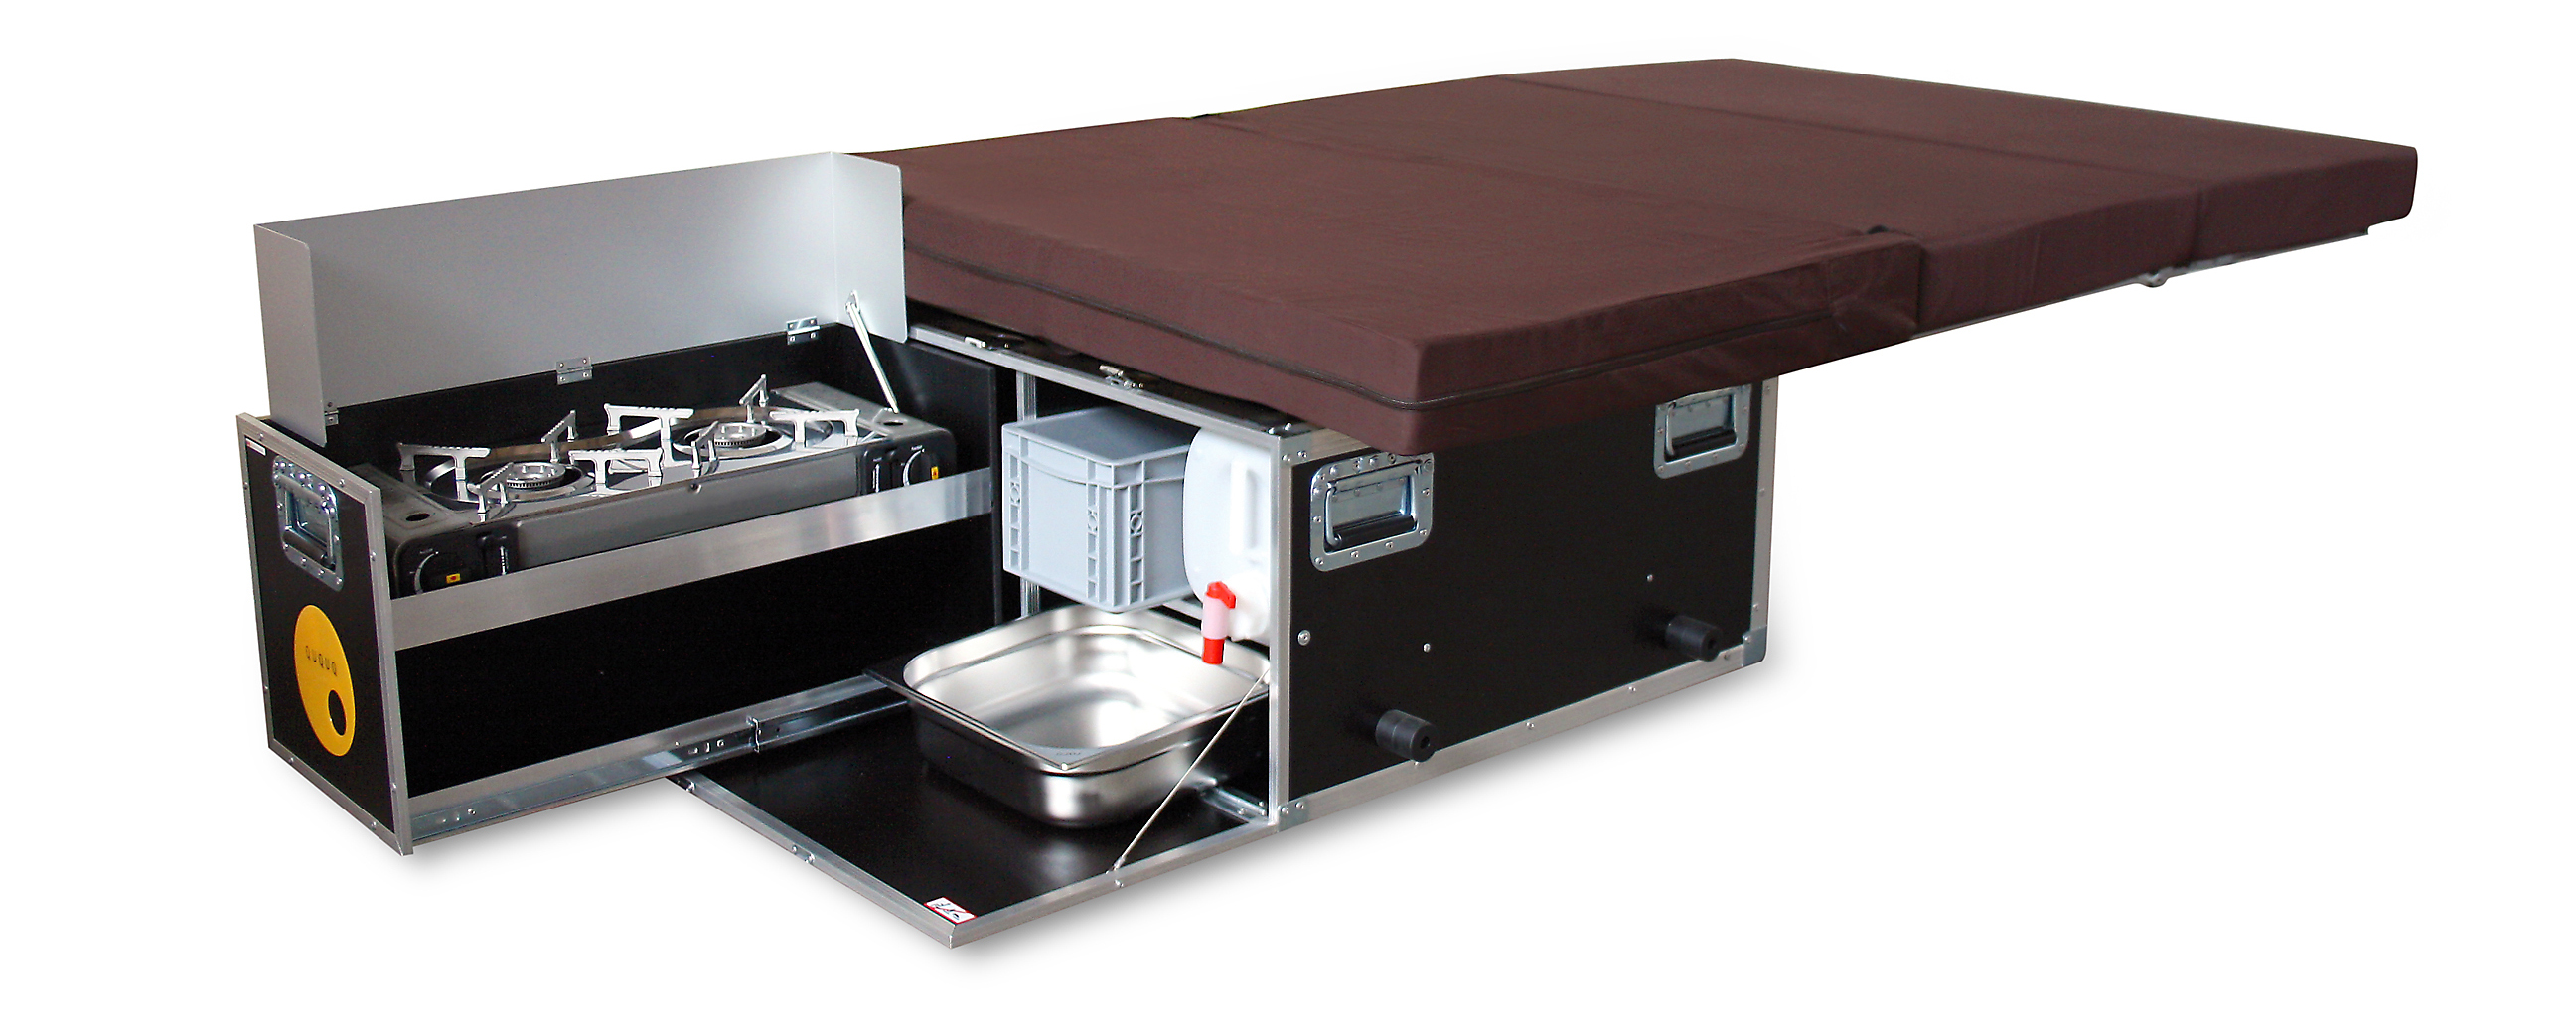 c6934ab11ffc The kitchen is ready to use in a few seconds and the comfortable bed folded  out with one hand. So you can fully enjoy the holiday and travel relaxed  and ...